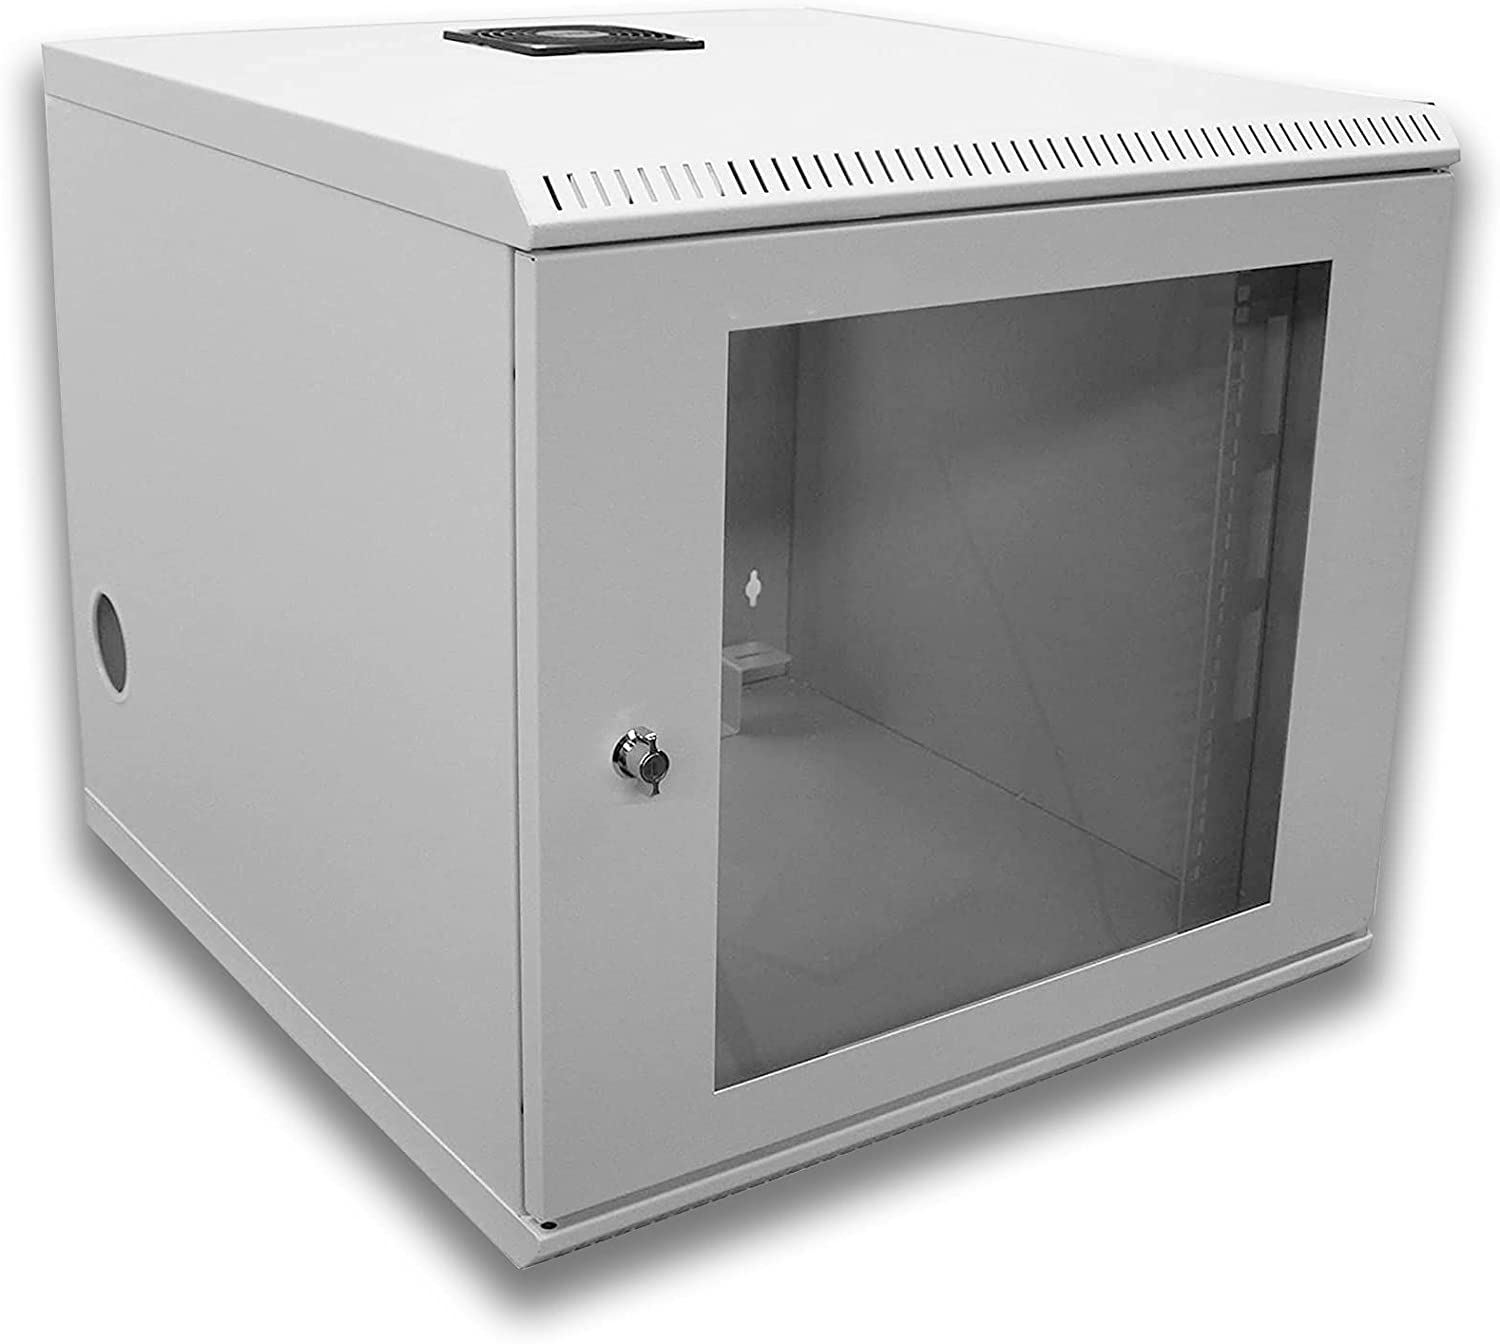 10U Beige Mounting Equipment Rack Cabinet with Locking - 2 Post Wall Mount Network Switch Cabinet.